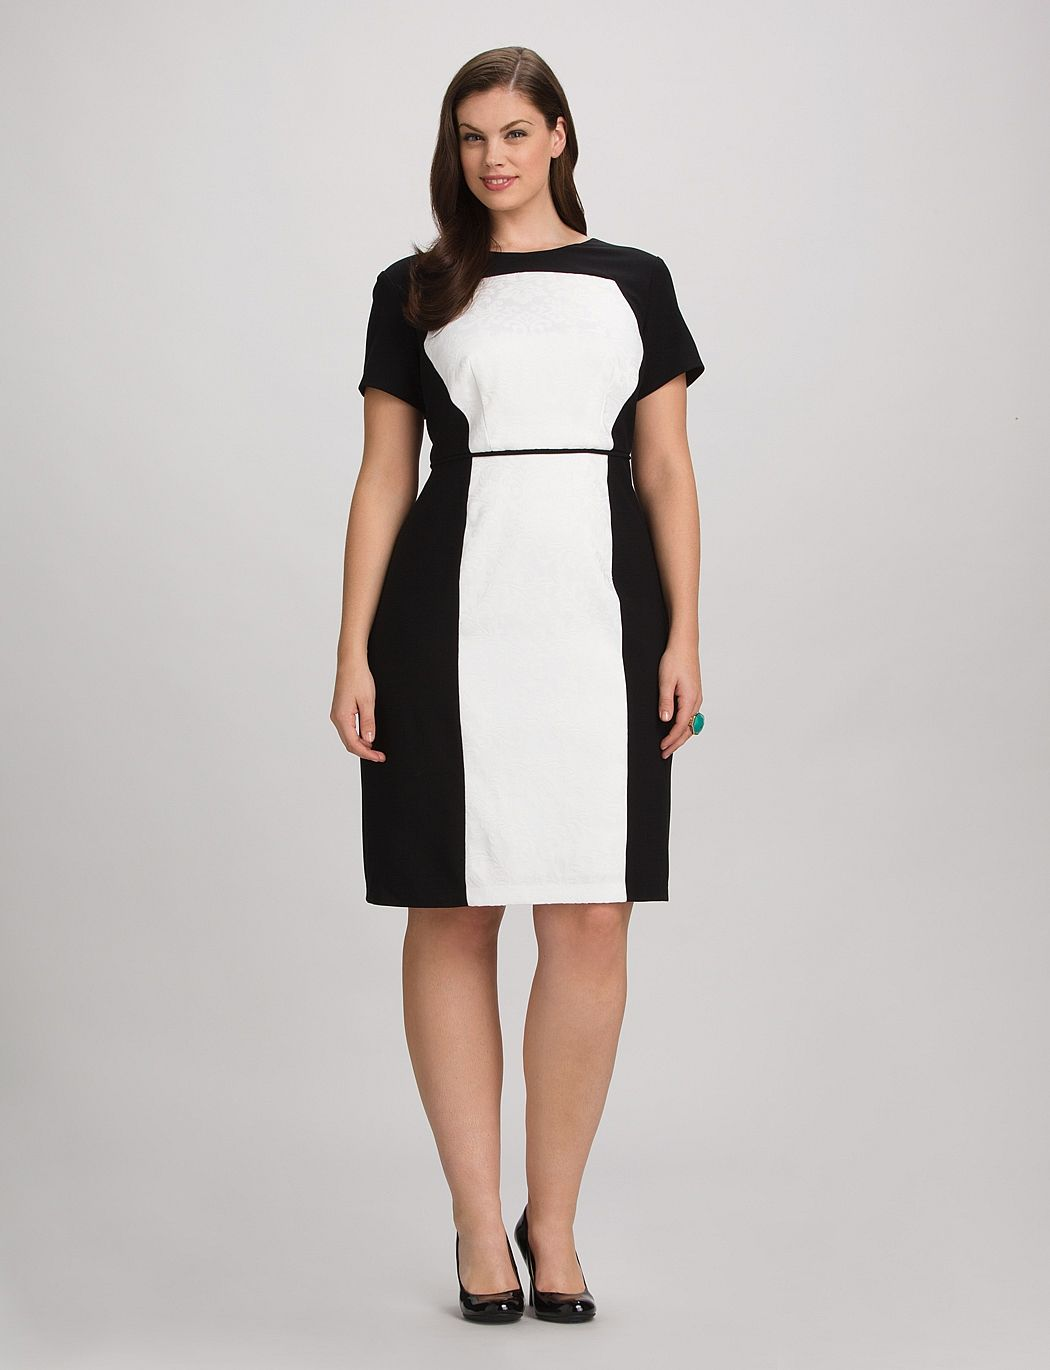 Plus Size | Dresses | Plus Size Colorblock Jacquard Sheath Dress ...